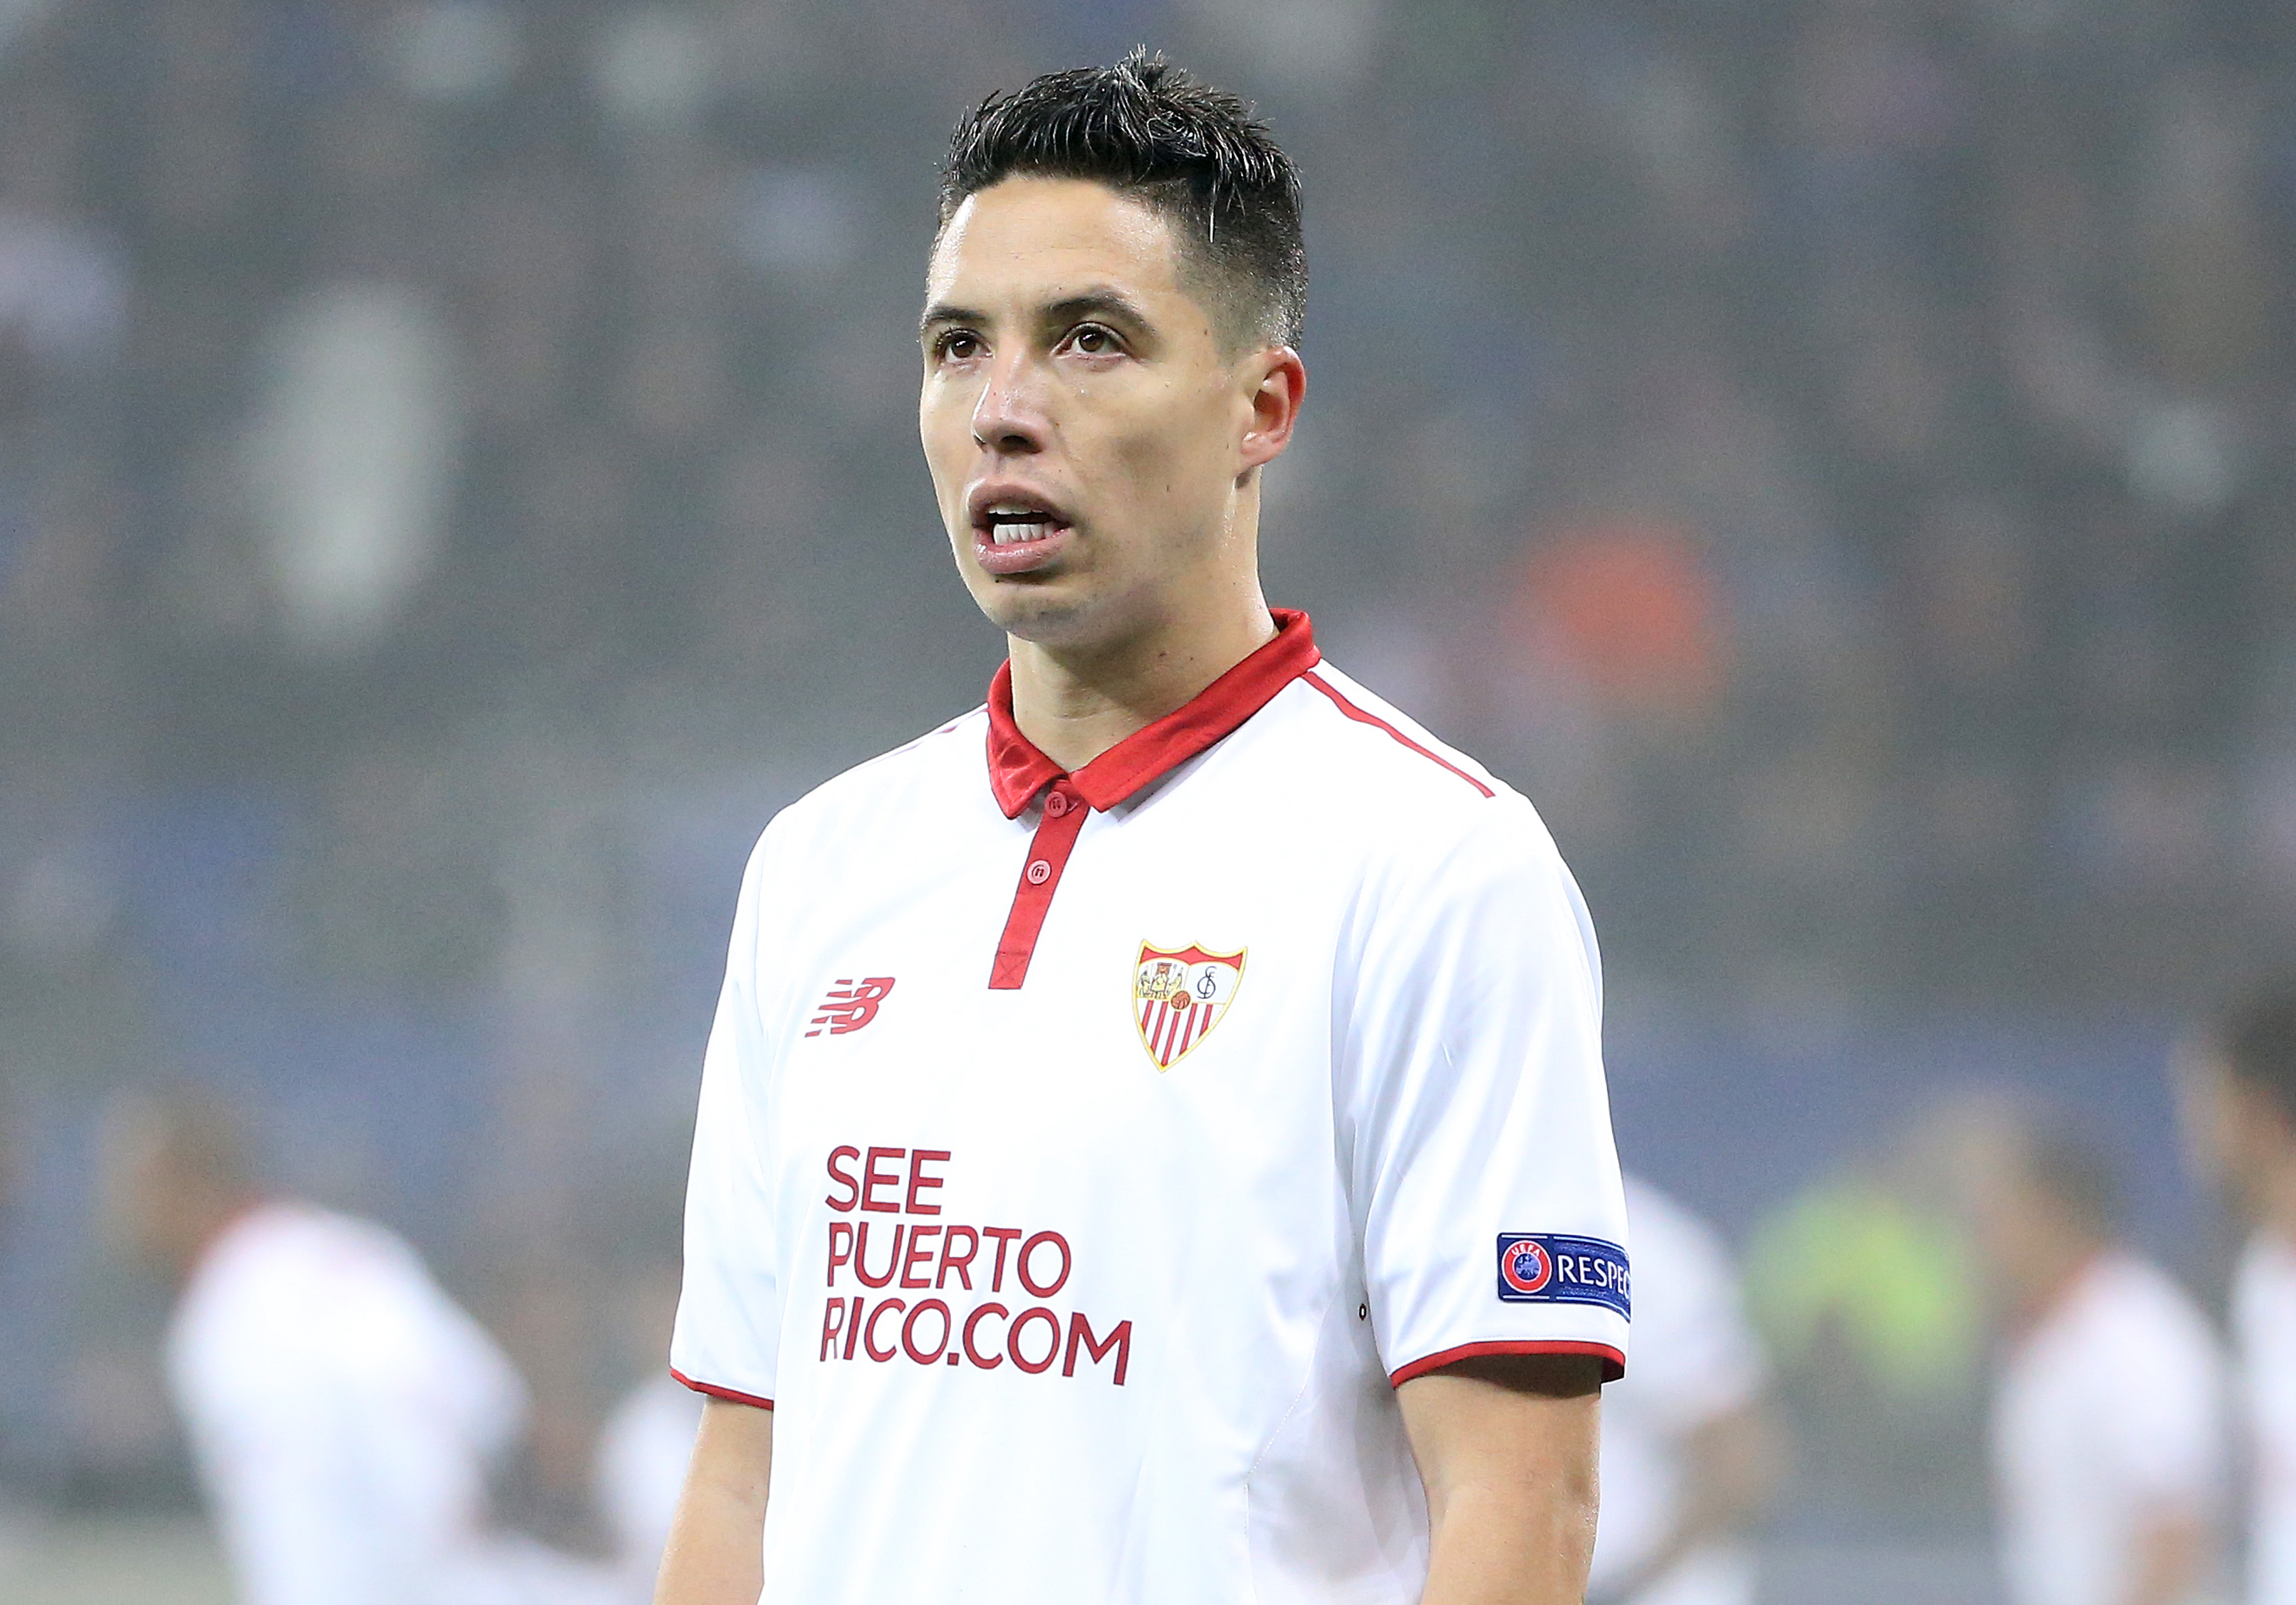 Manchester City star Samir Nasri reveals Twitter account was hacked after tweets claimed he had sex with doctor